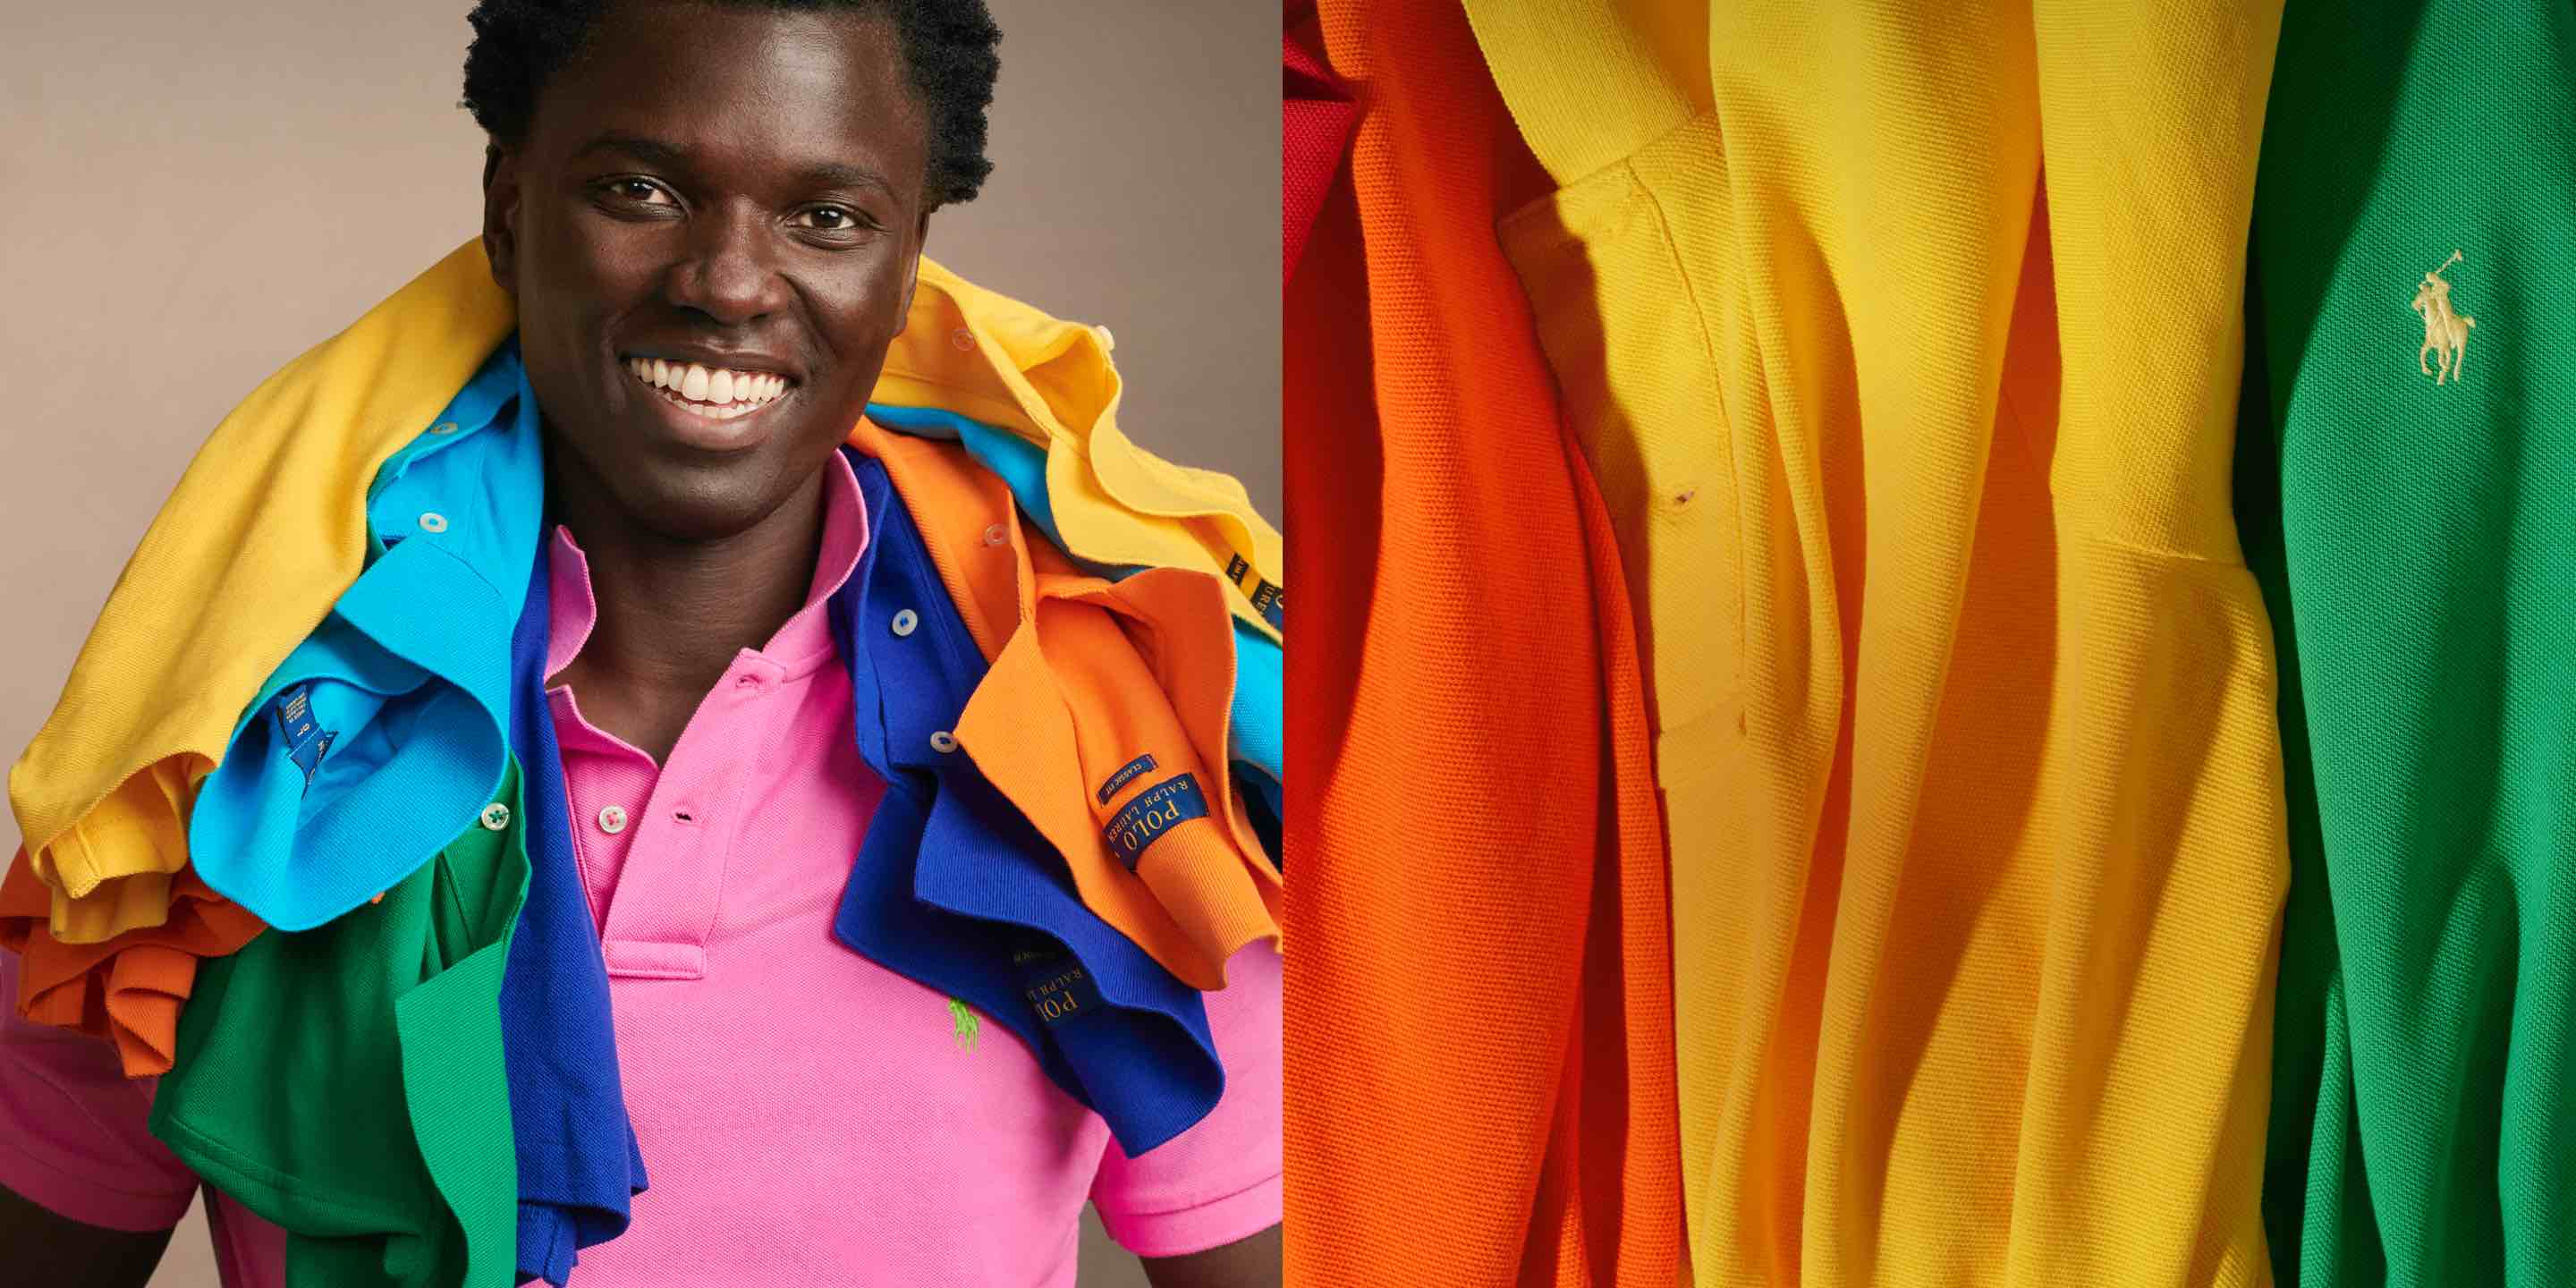 Man wears pink Polo shirt; Polo shirts in a rainbow of hues.